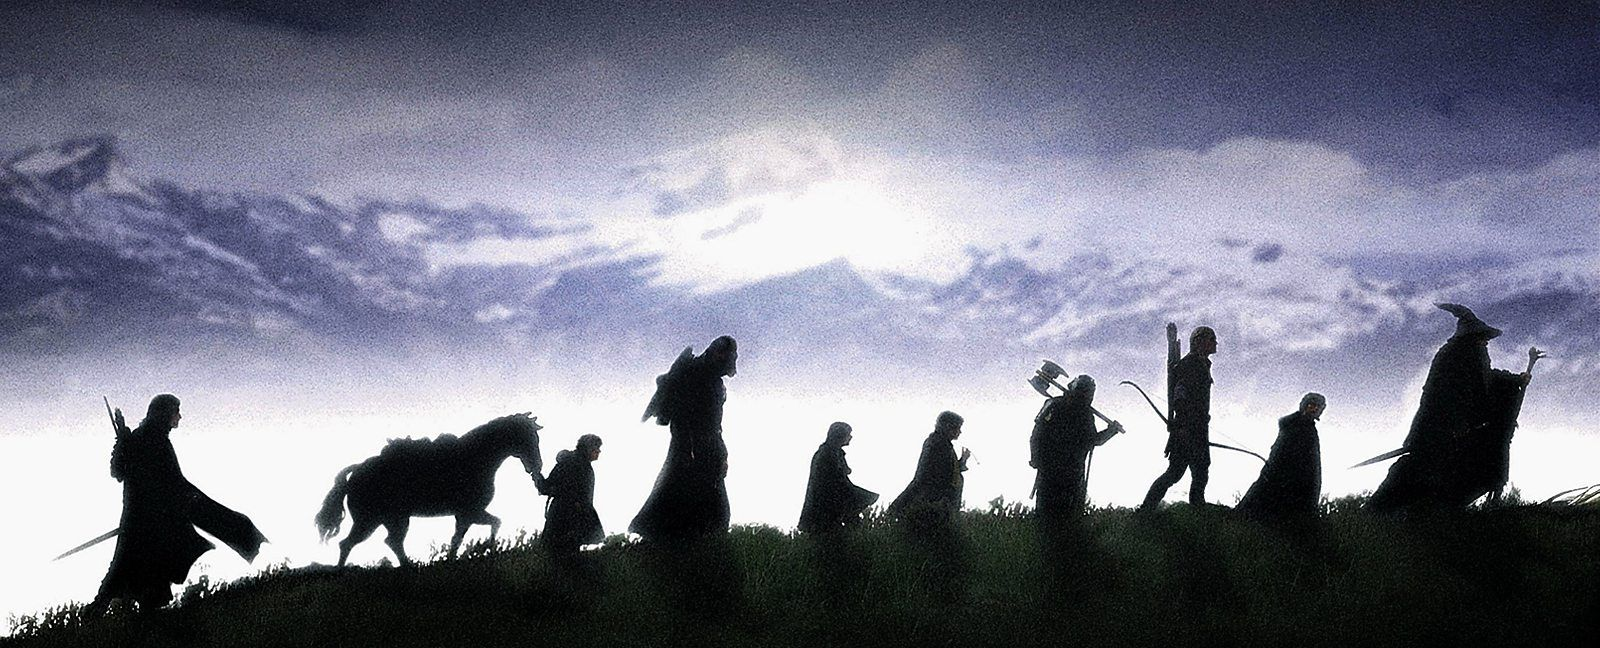 15 Unbelievable Things You Didn't Know About The Lord of the Rings